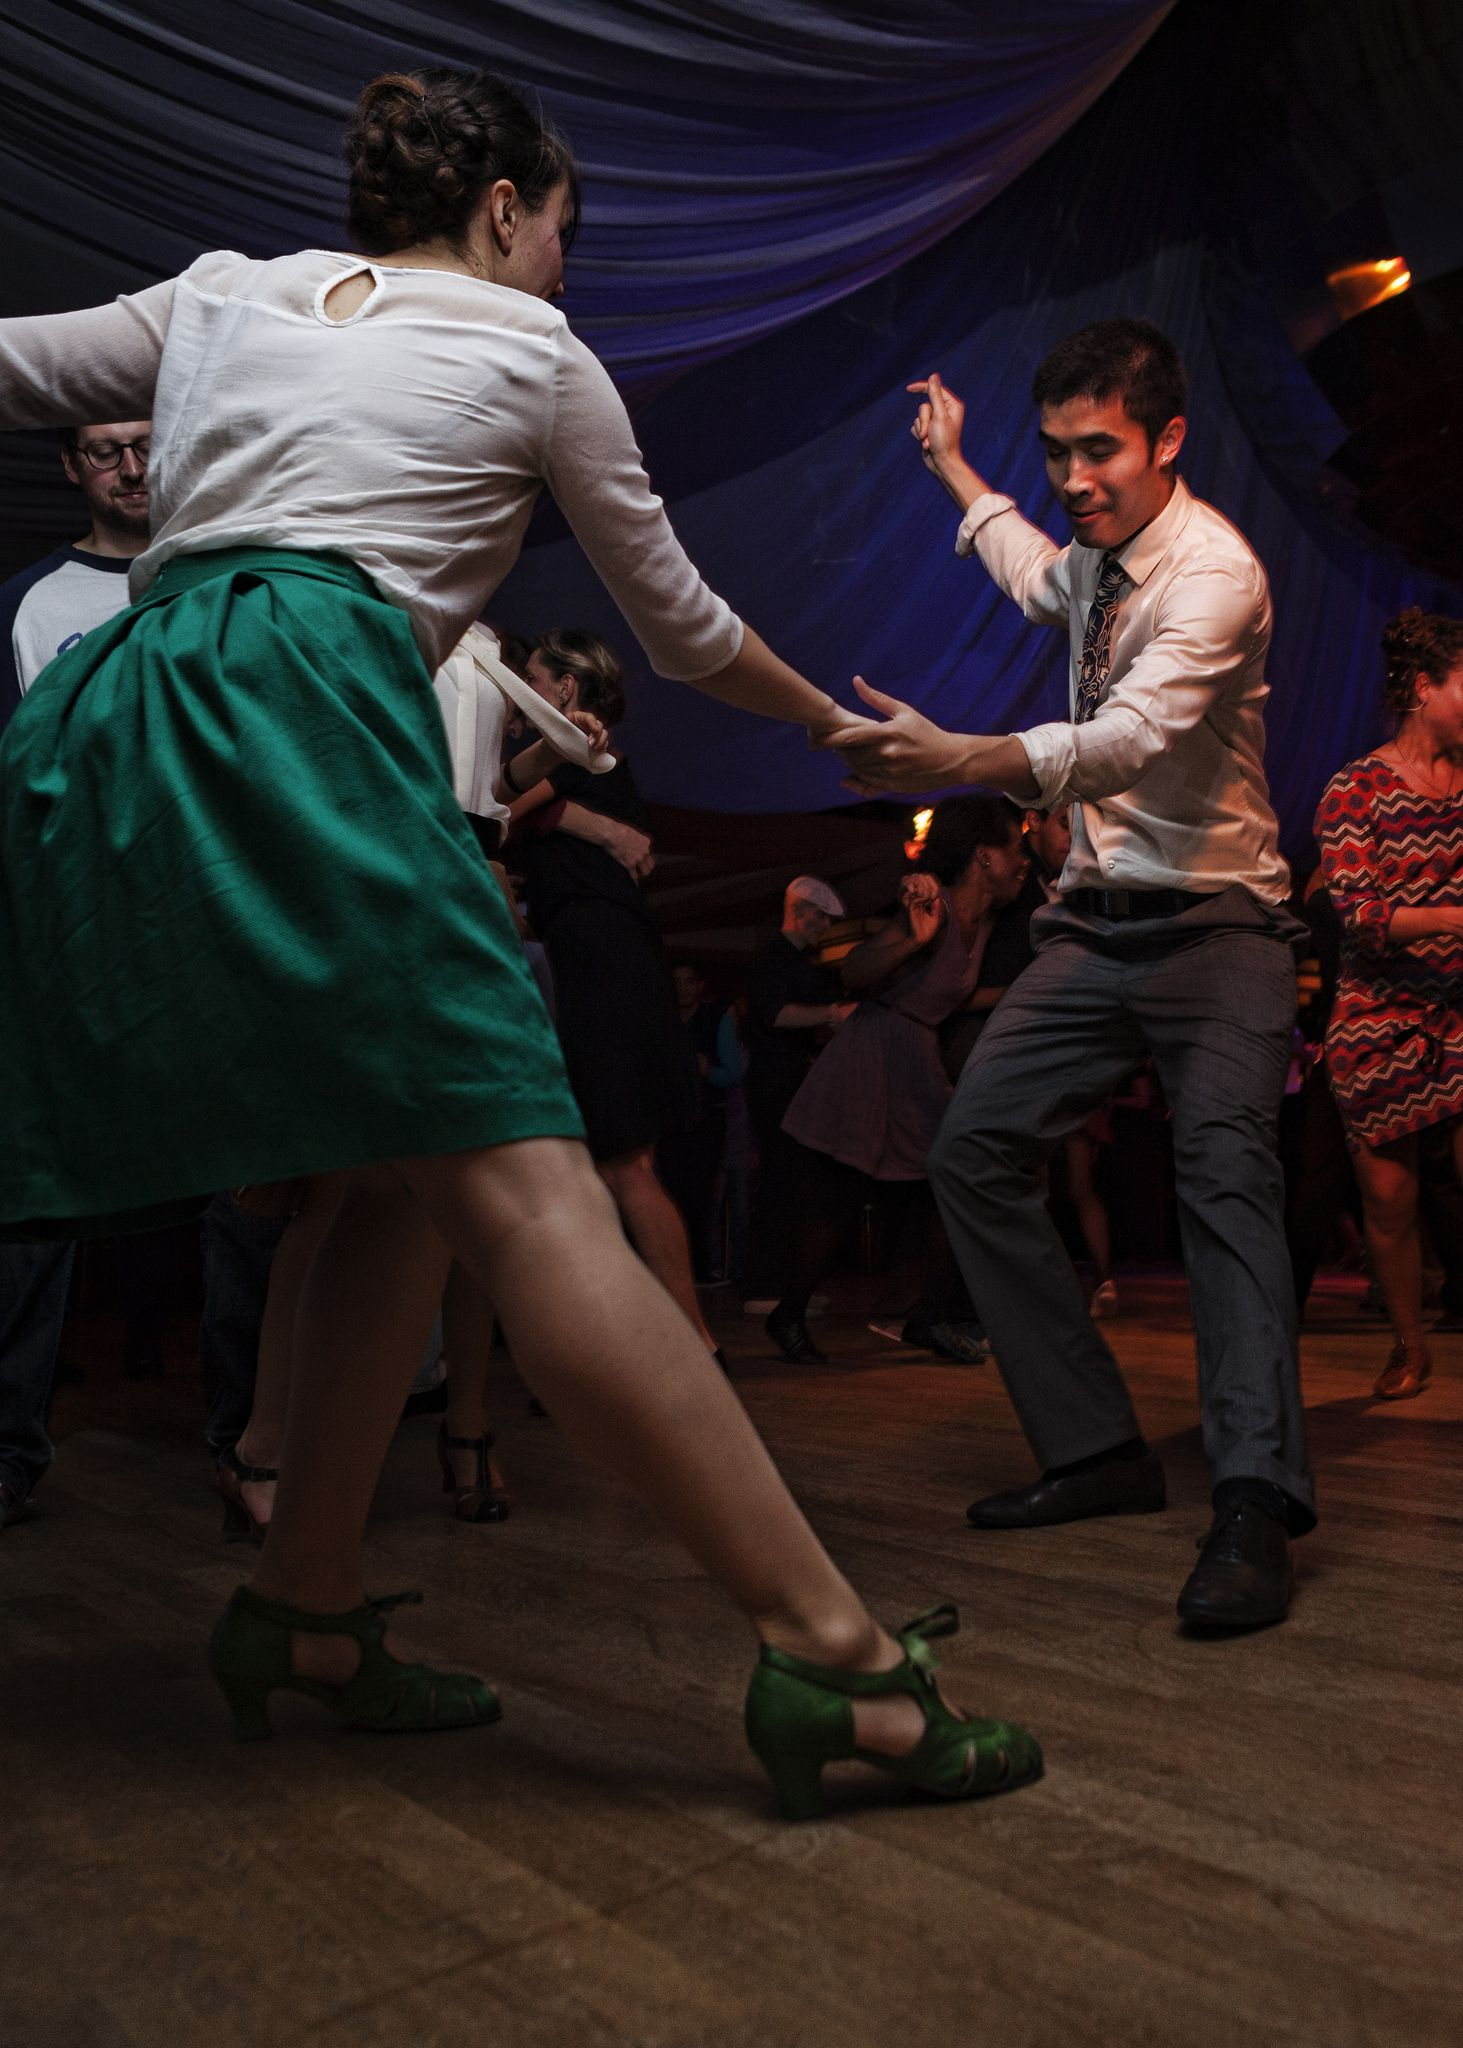 Danse De Salon A Paris Lindy Hop At The Chalet Du Lac In Paris In 2019 Swing